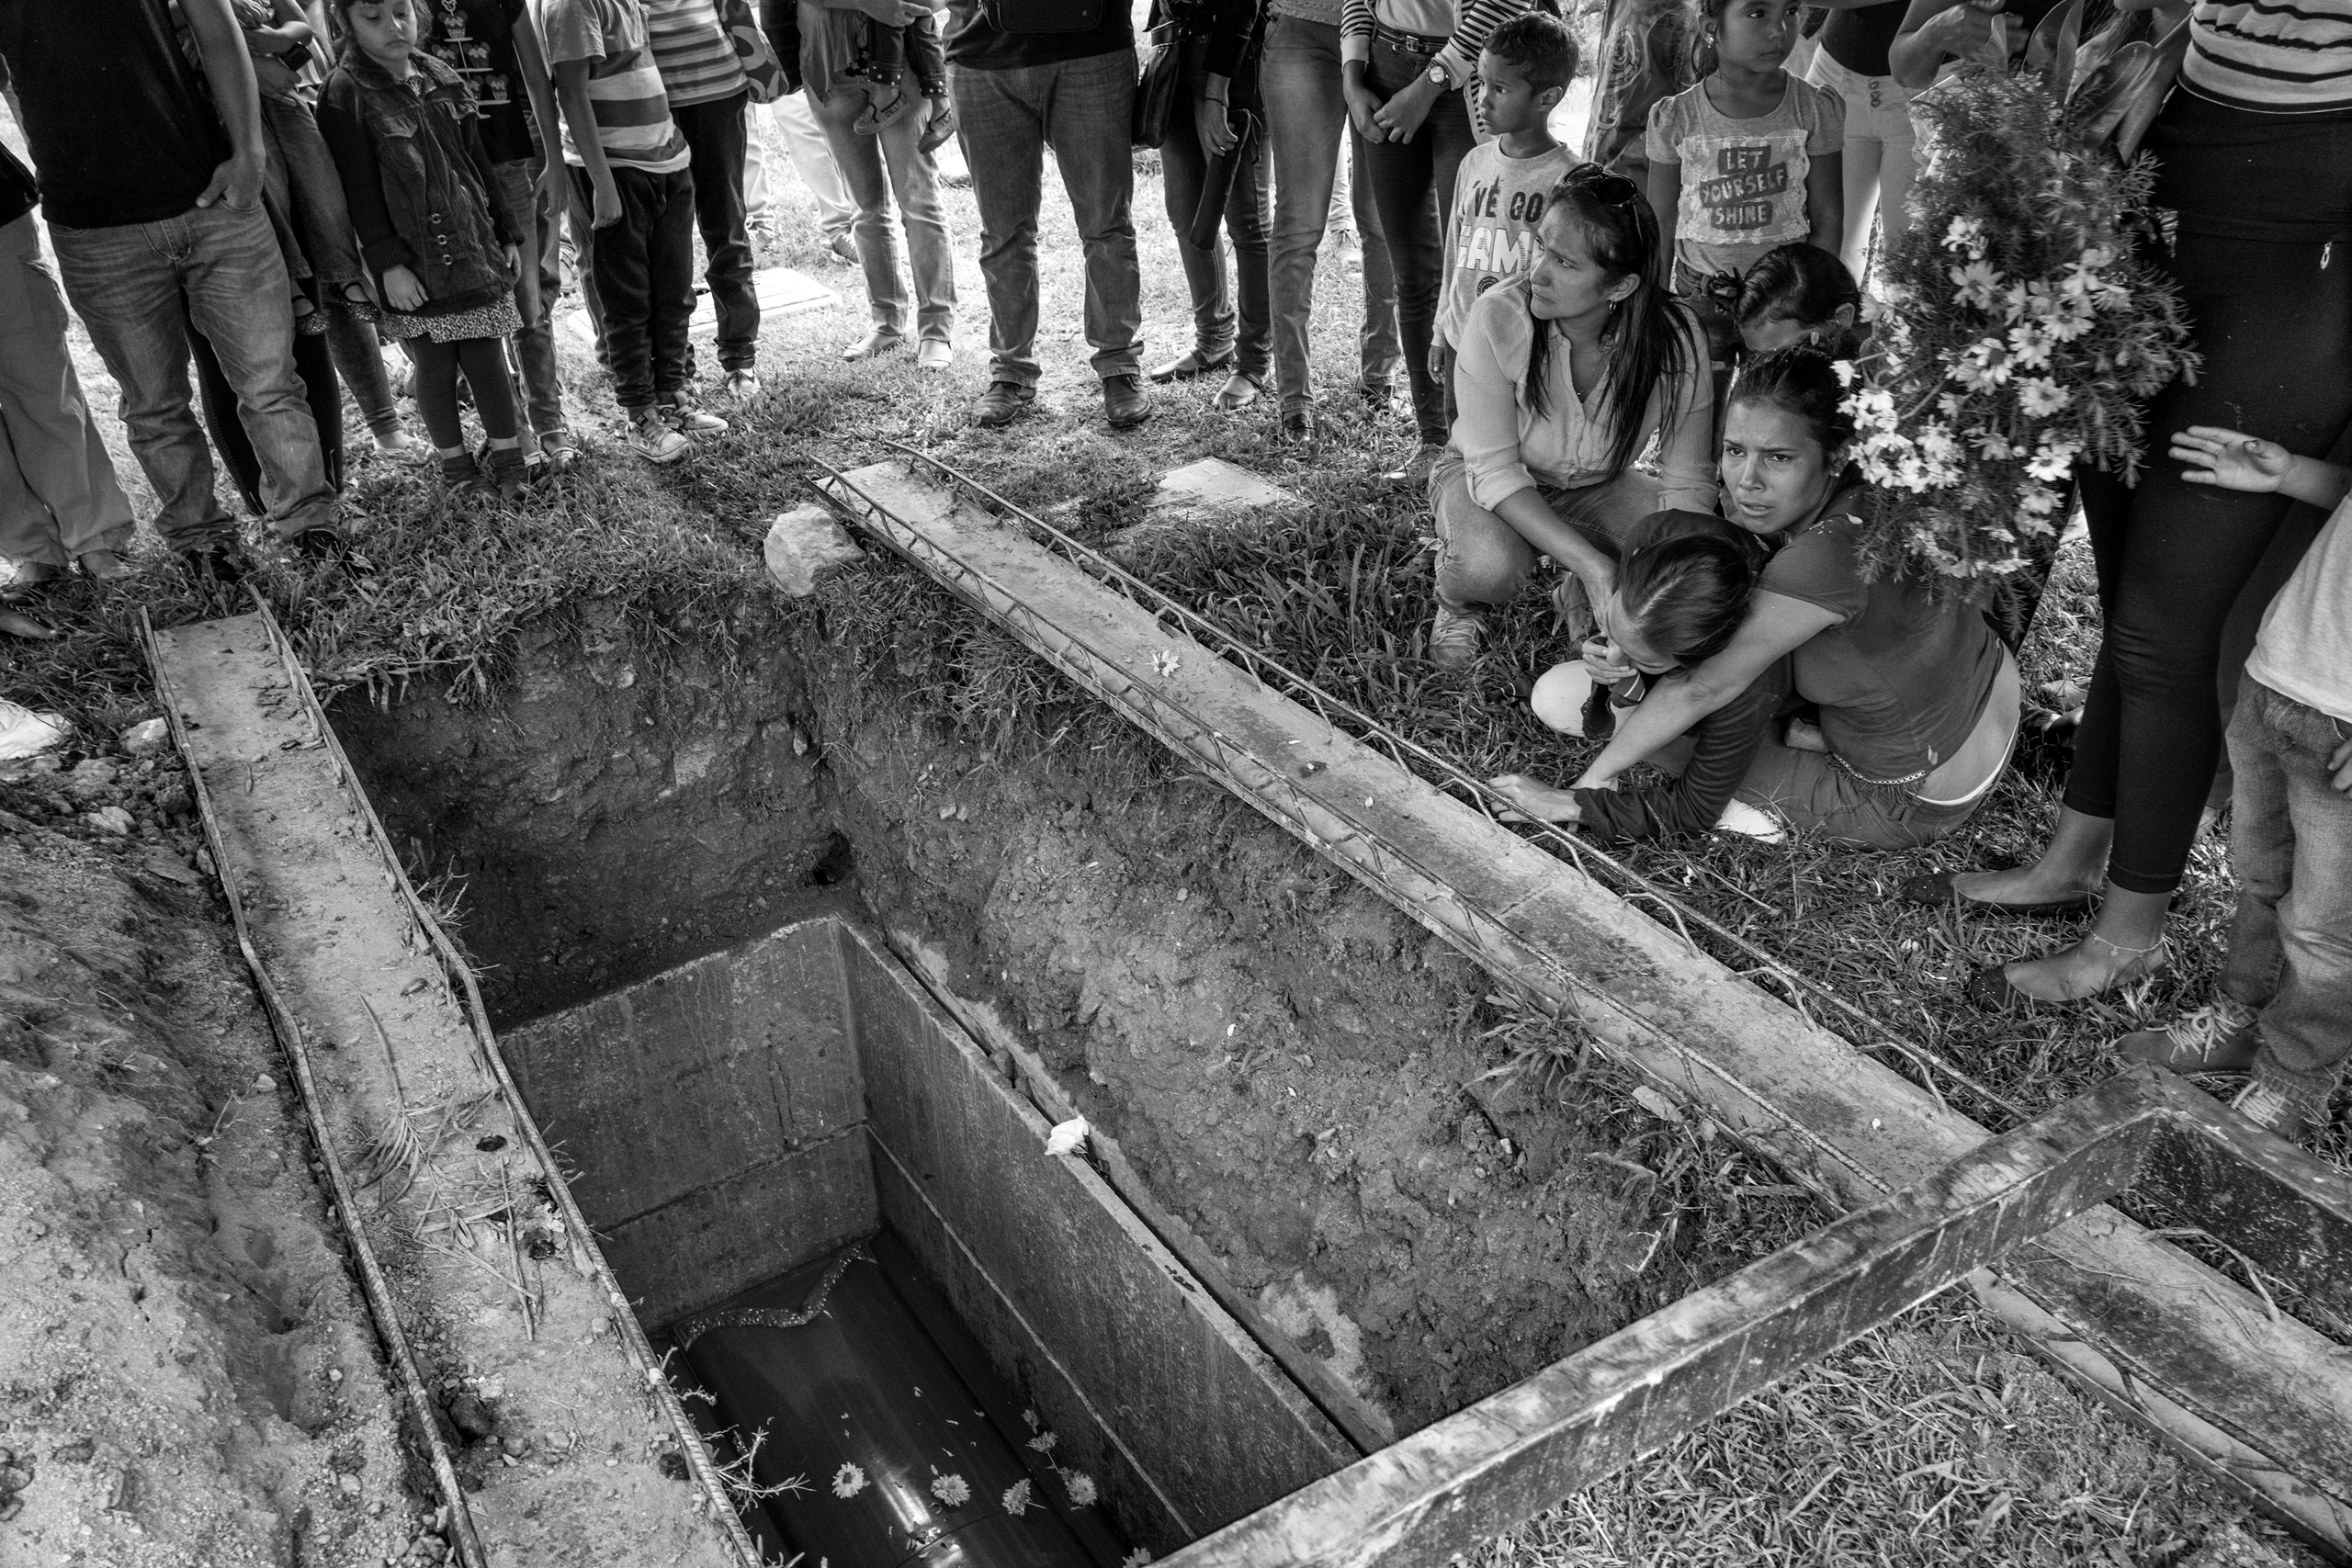 The wife of 25-year old Fredy Guerrero, who his family says was tortured and died while under police detention, cries at the grave of her husband, June 2016.